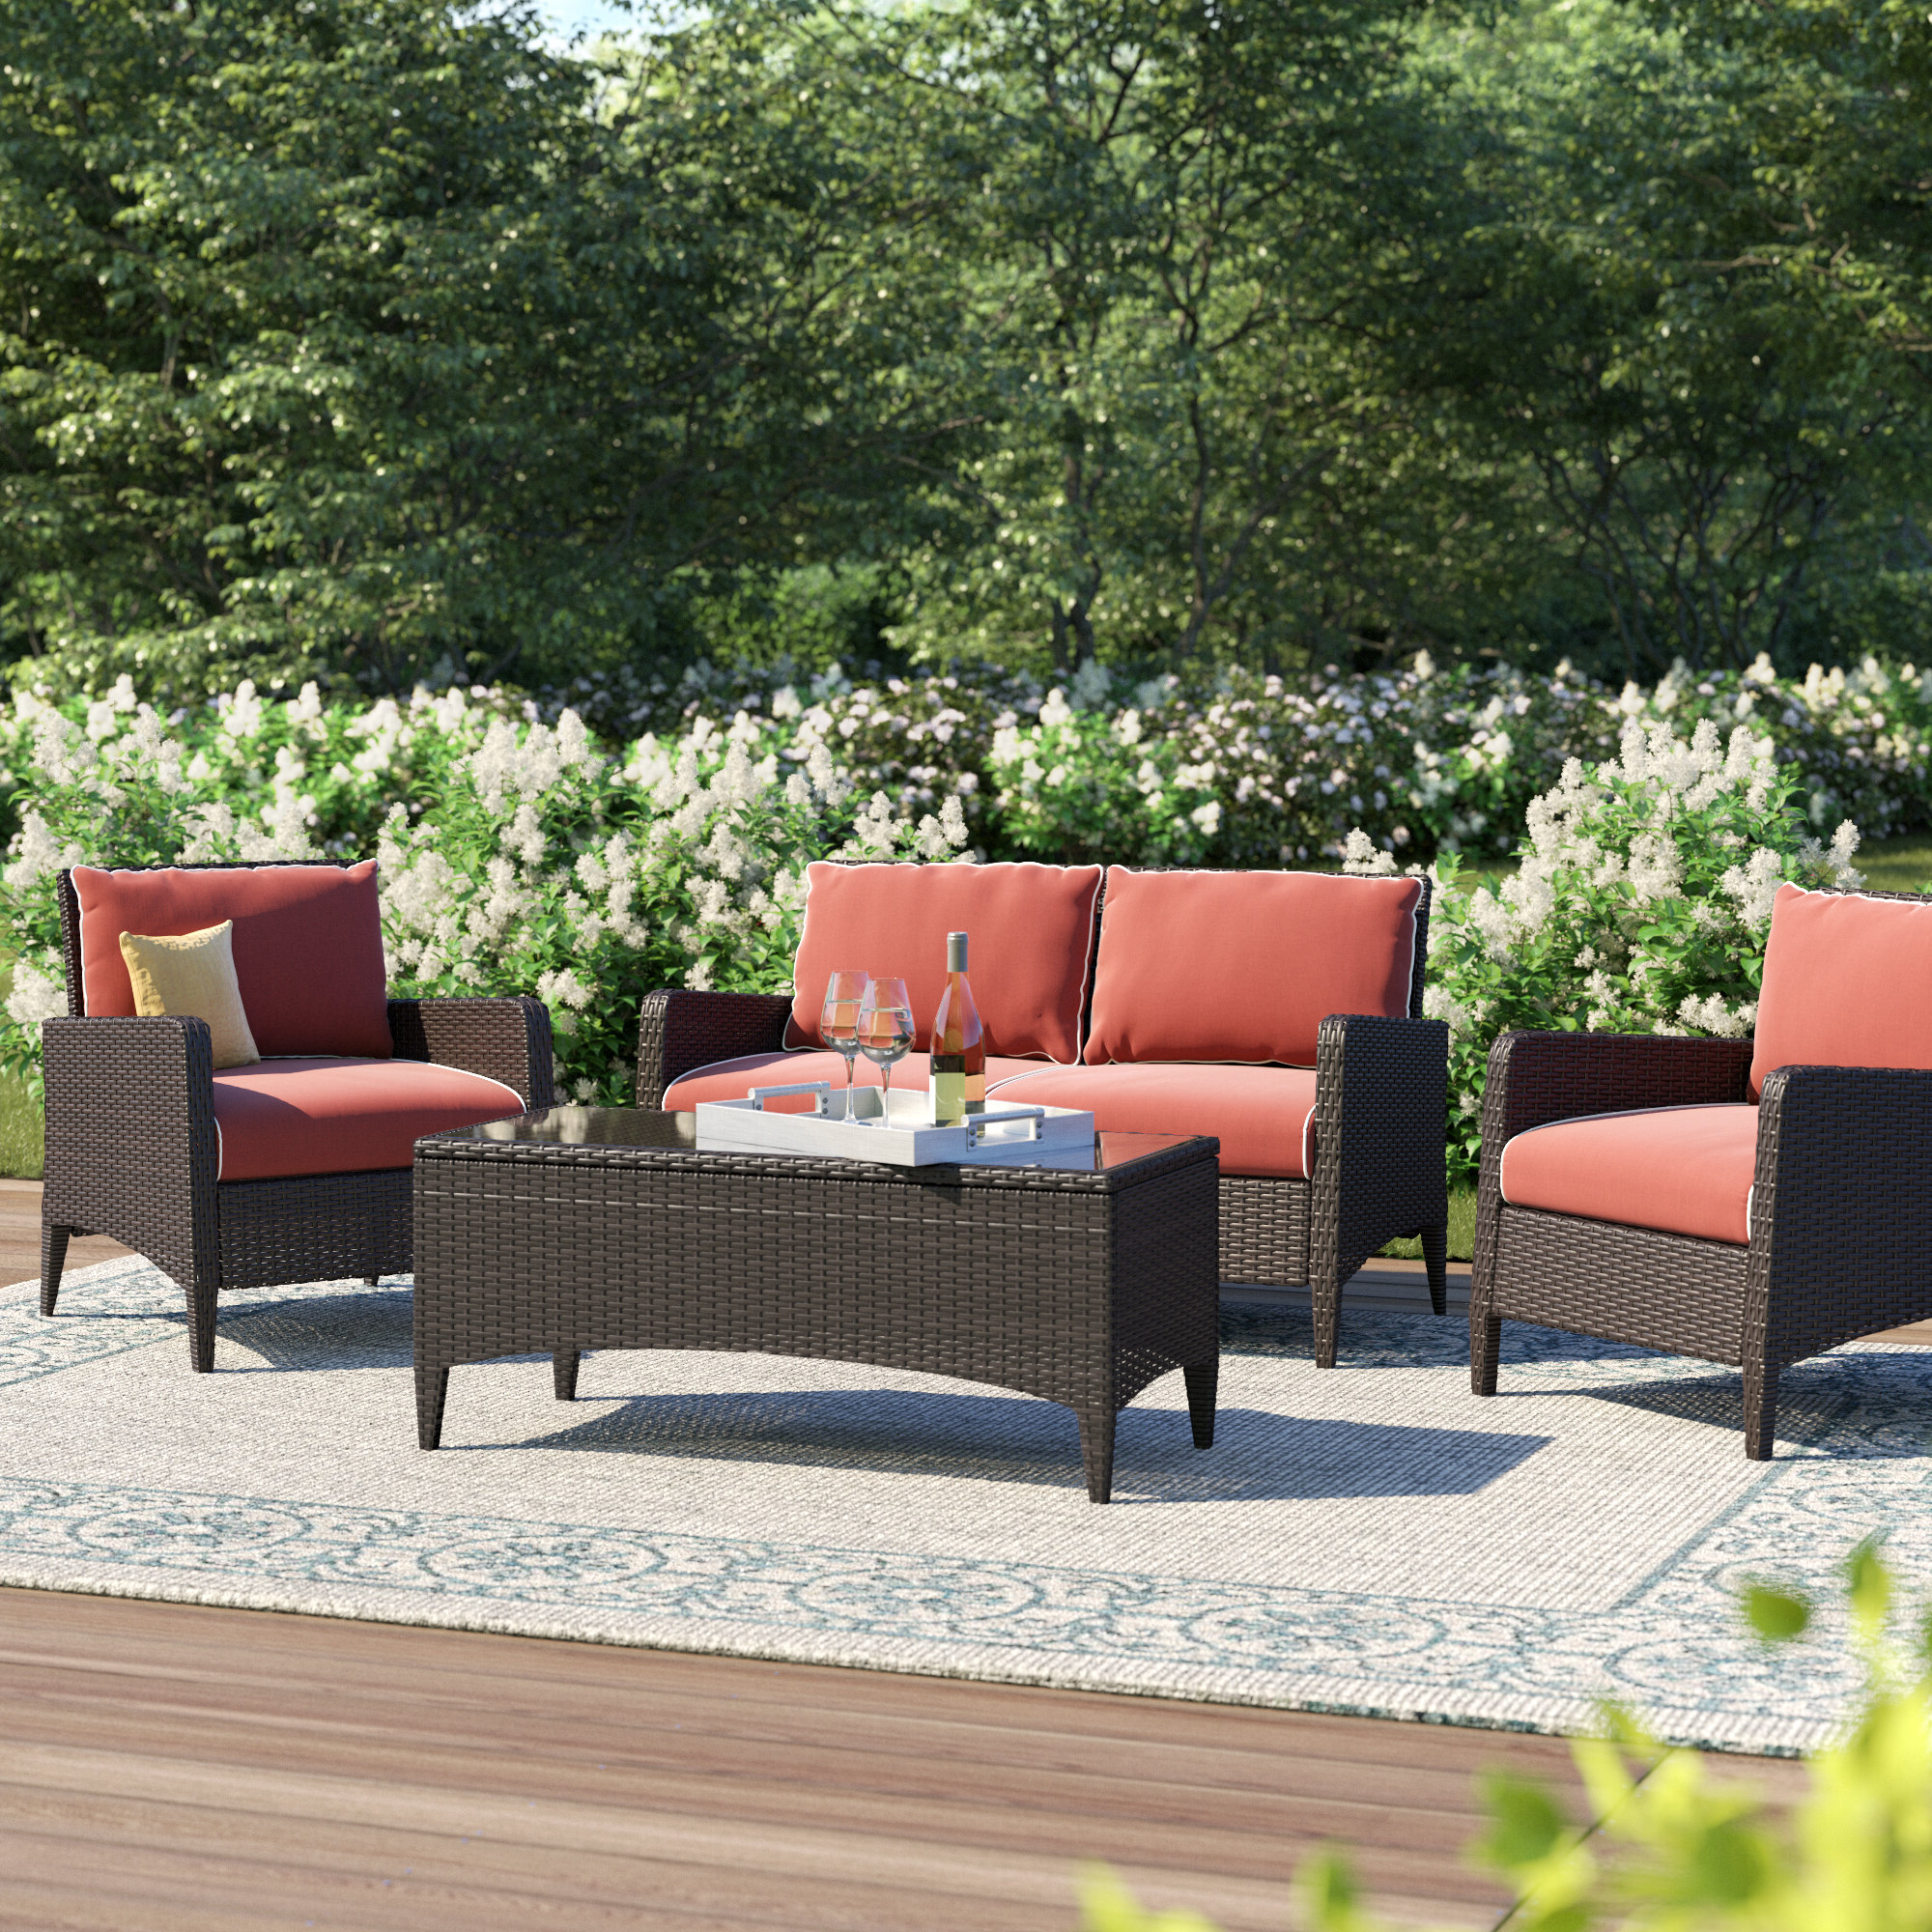 Mosca Patio Loveseats With Cushions Inside Recent Mosca 4 Piece Deep Sofa Seating Group With Cushions (View 11 of 20)